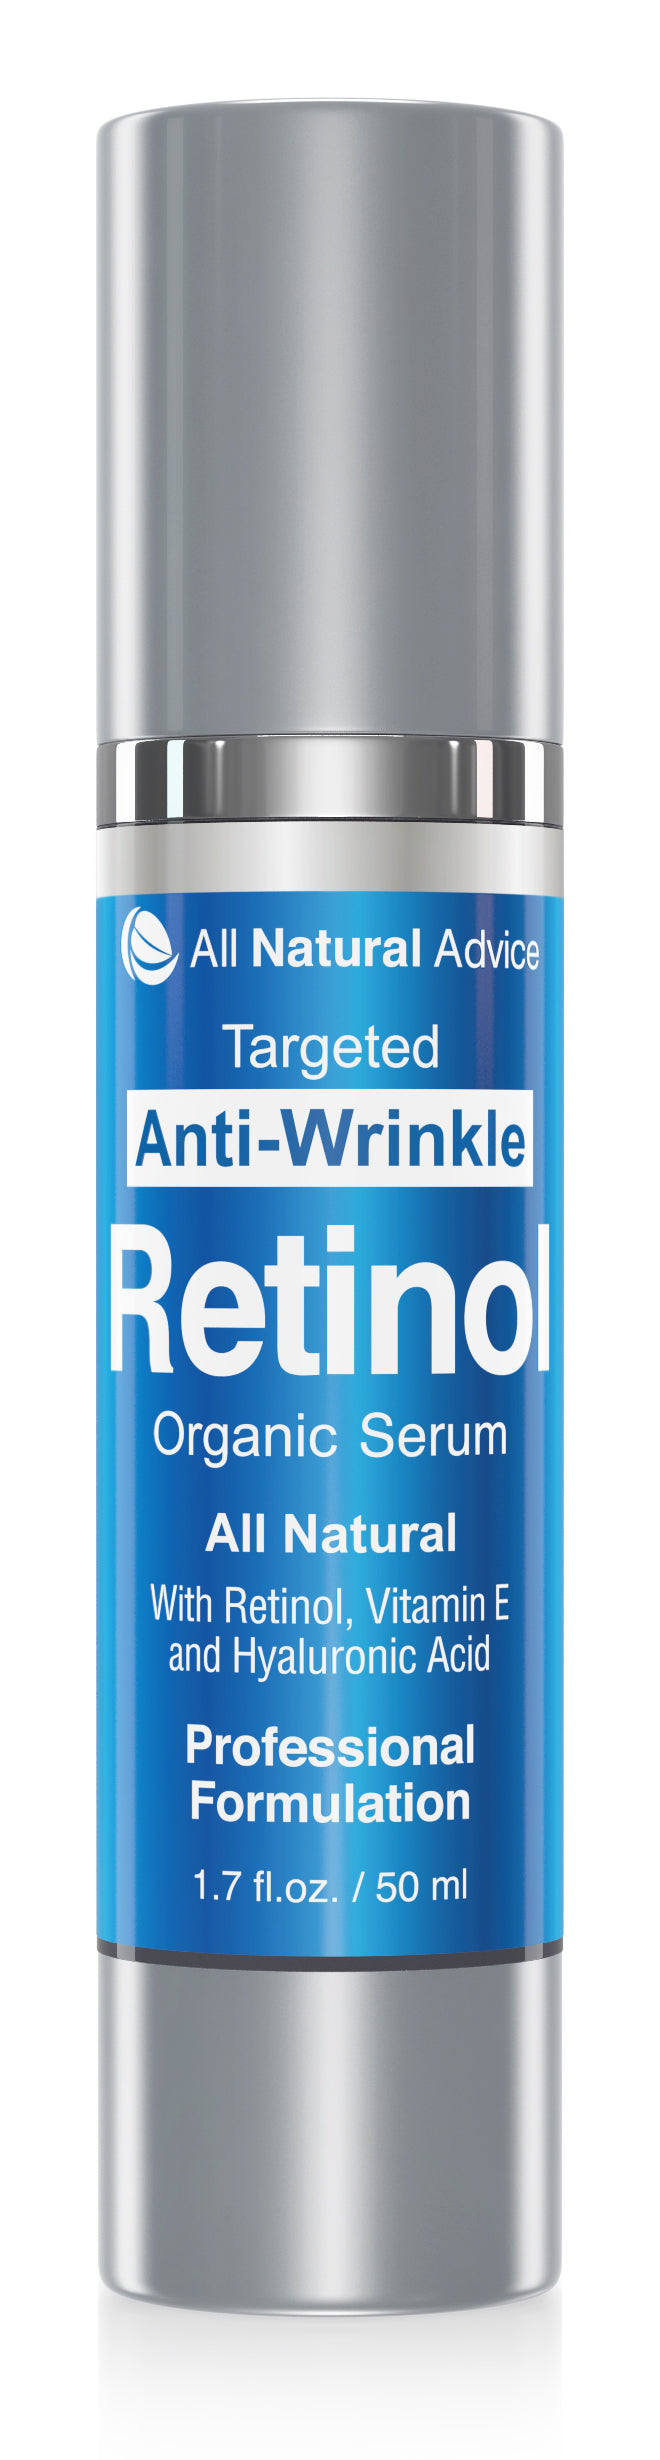 Retinol Serum with Hyaluronic Acid